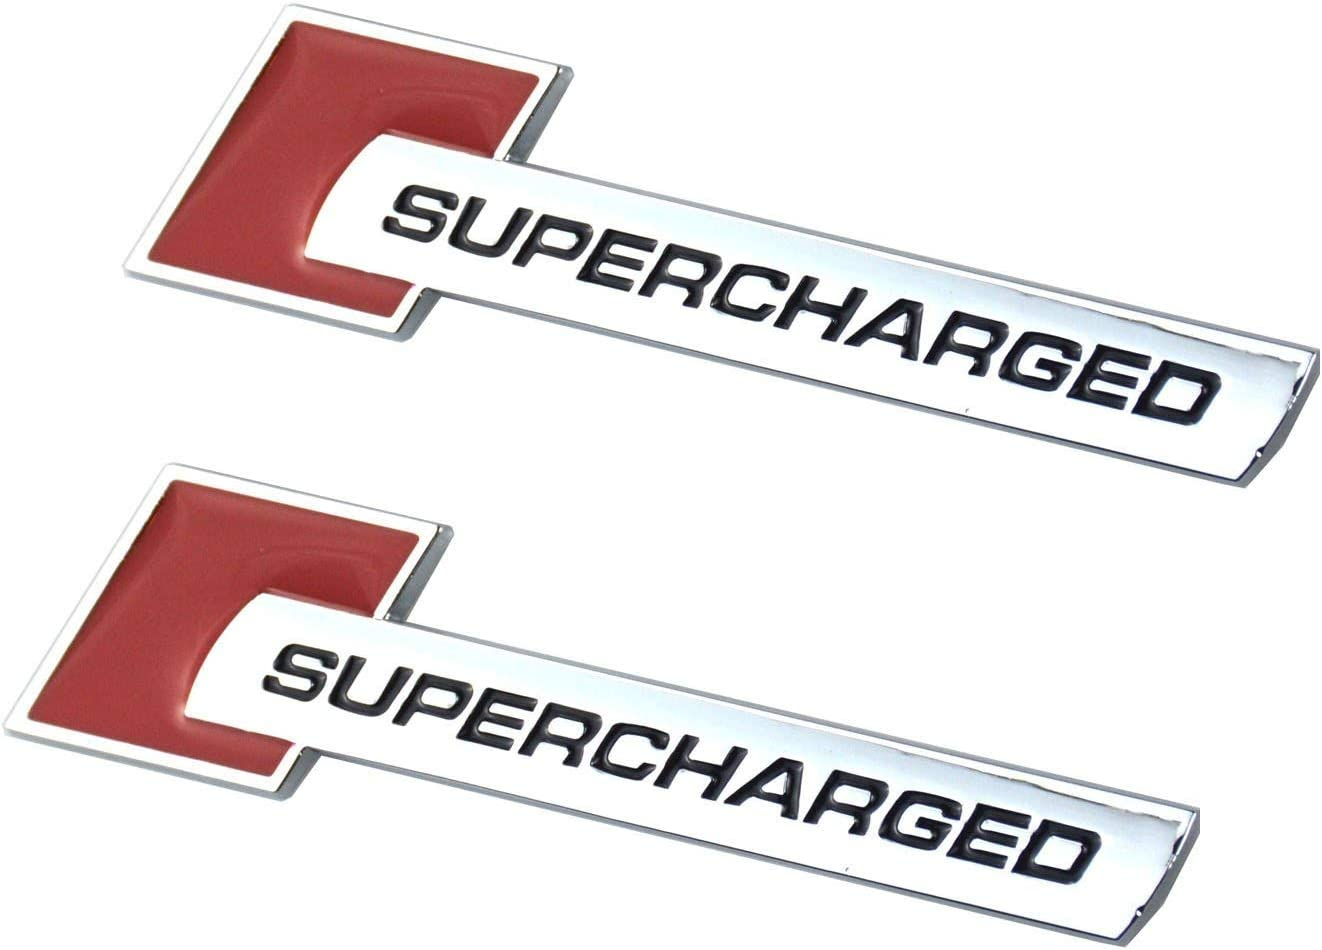 red 2pcs Supercharged Alloy Badge Emblems,3D Decal Replacement for Audi TT A3 A4 A5 A6 A7 A8 Q3 Q5 Q7 S4 S6 S5 RS5